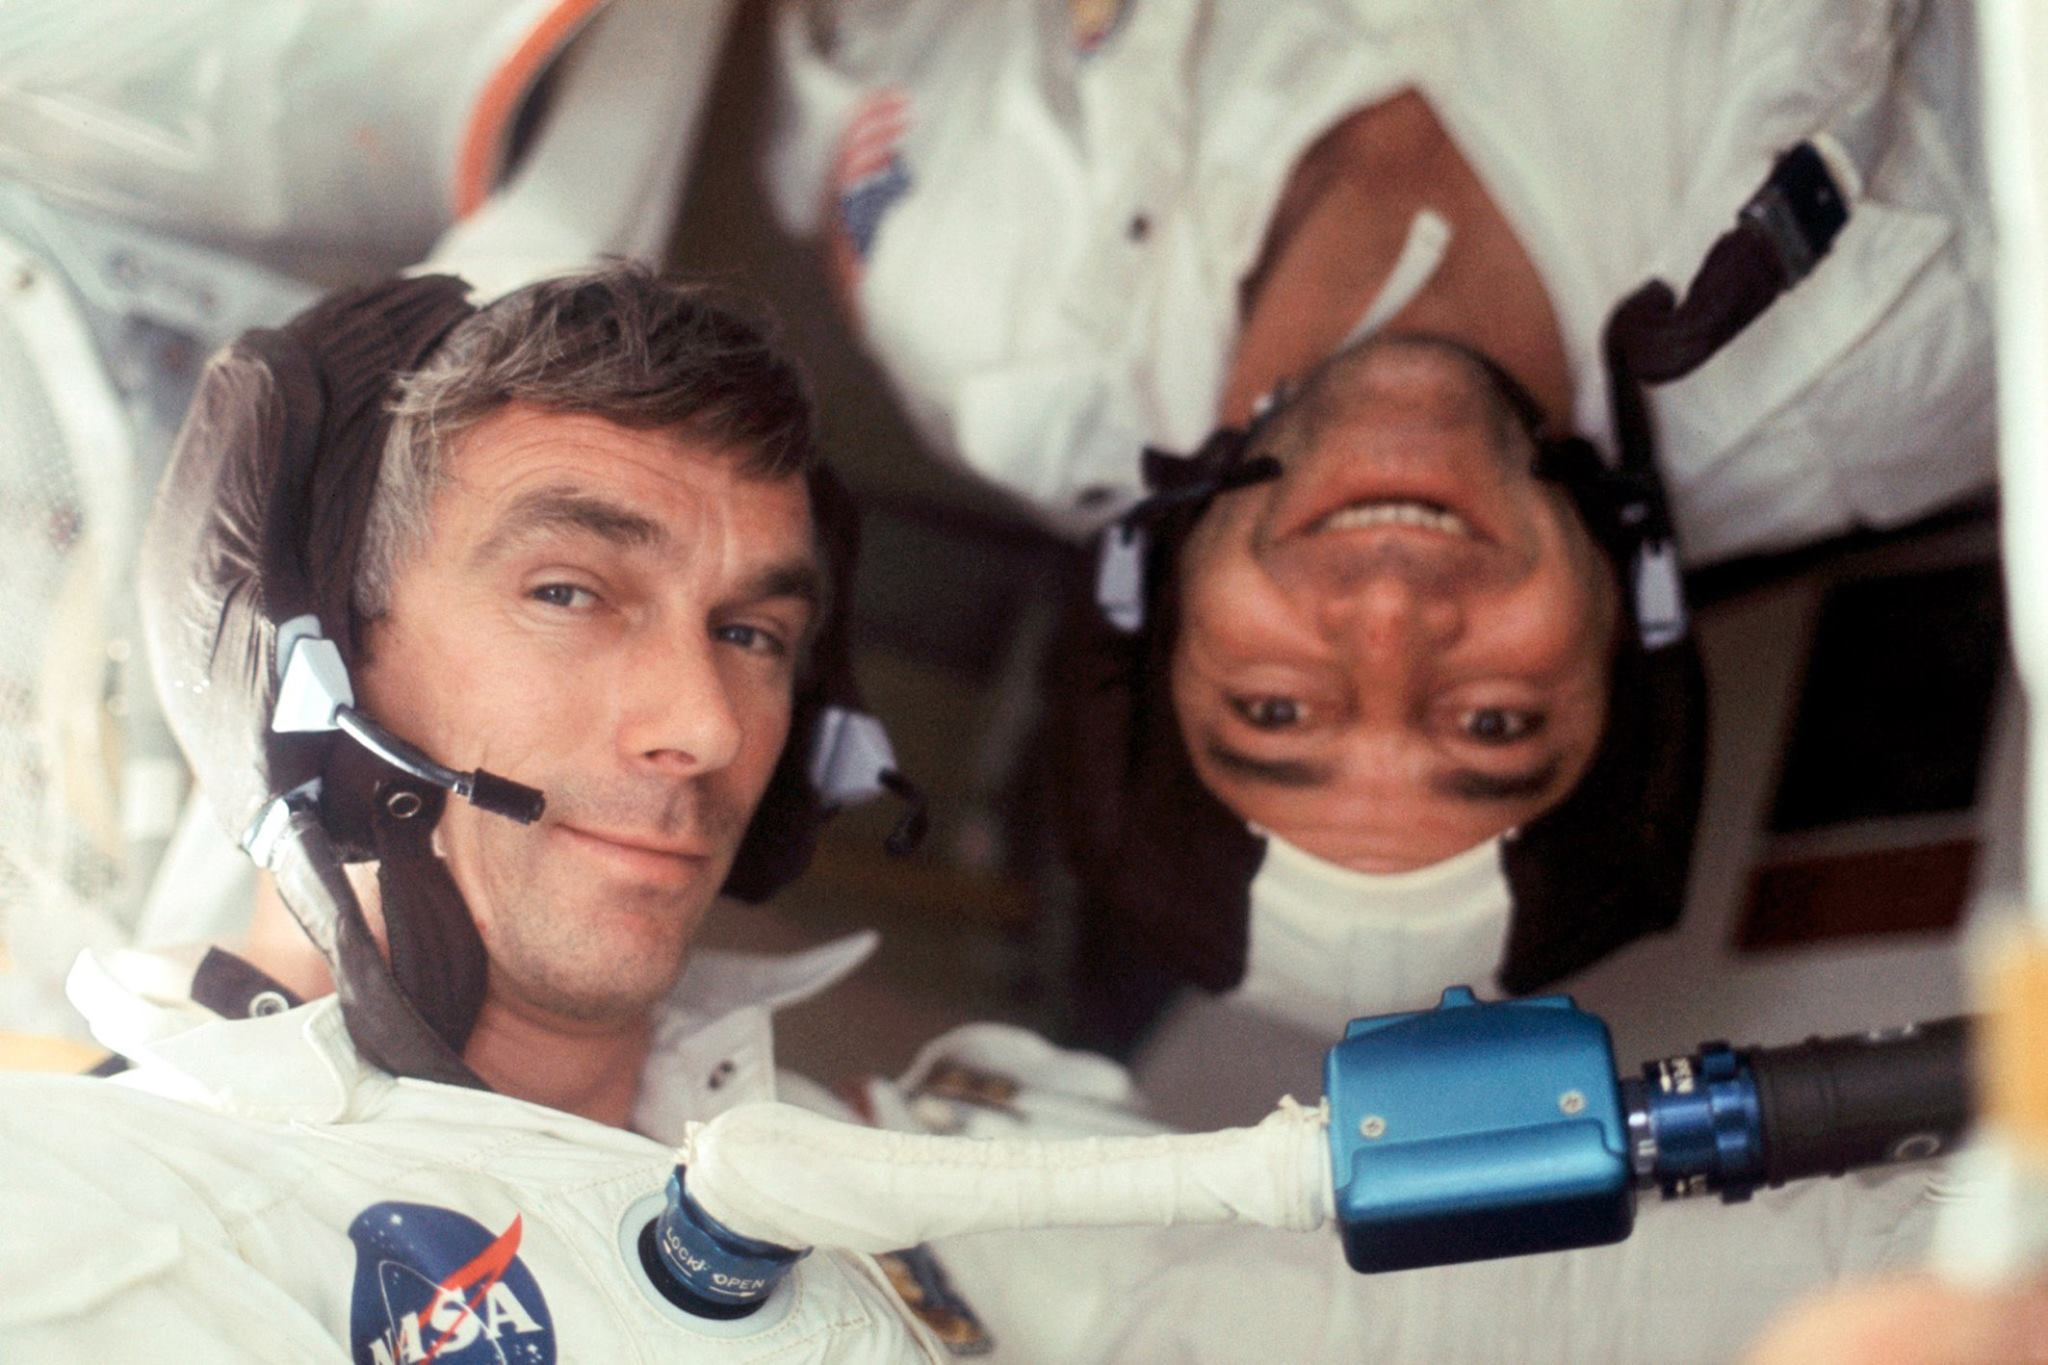 Good times: Gene Cernan (left) and crew mate Ron Evans, during the Apollo 17 mission, photographed by crew mate J